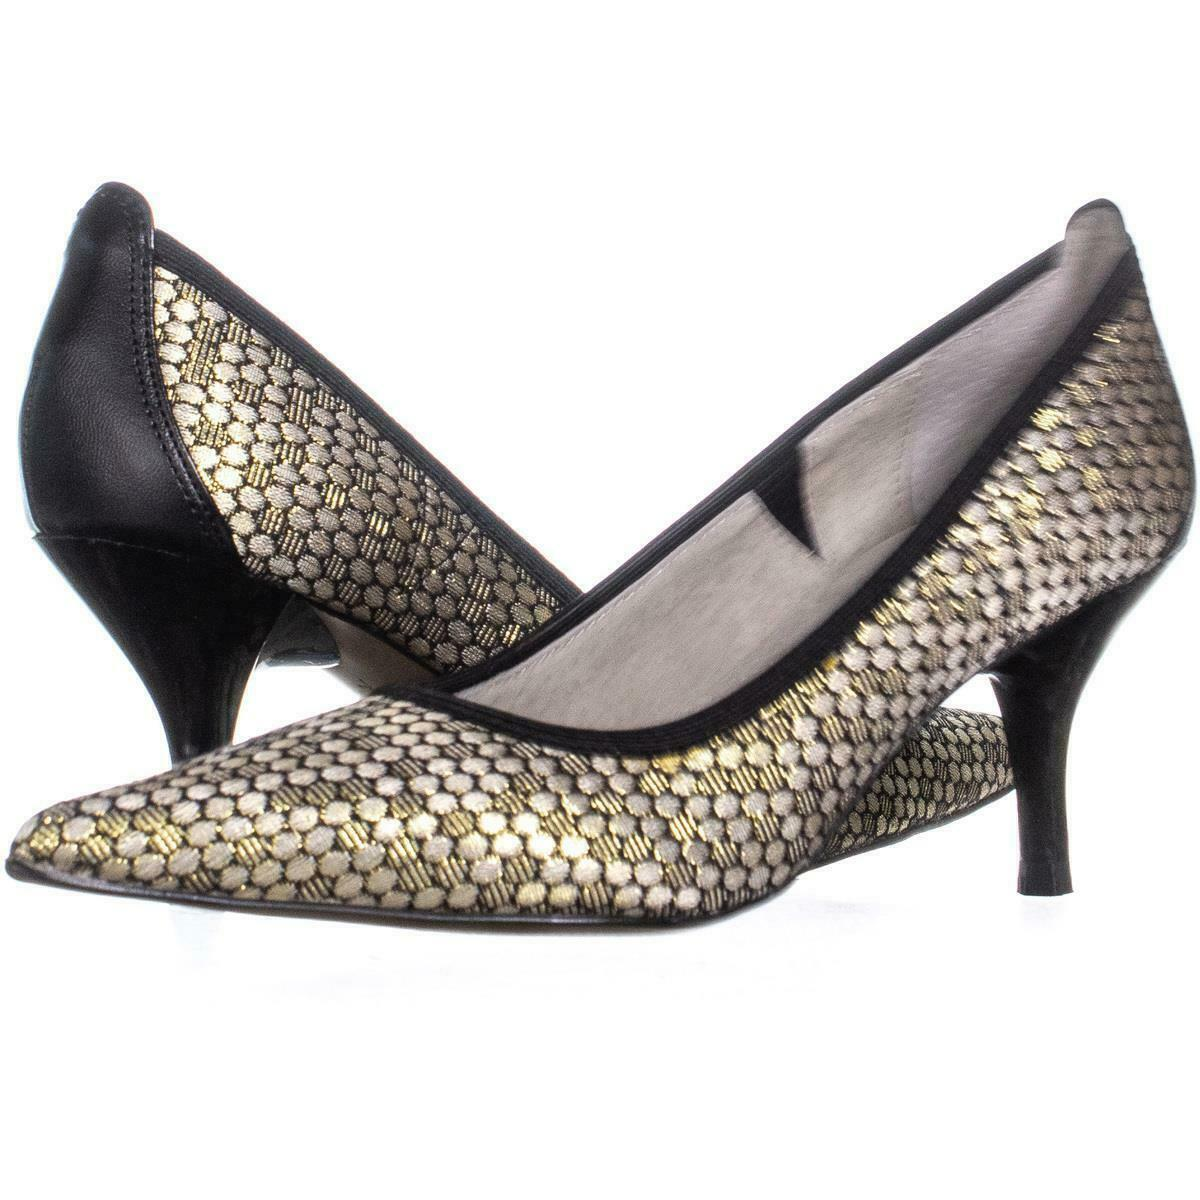 Primary image for Tahari Dottie Pointed-Toe Medium-Heel Pumps 991, Oro/Black, 5 US